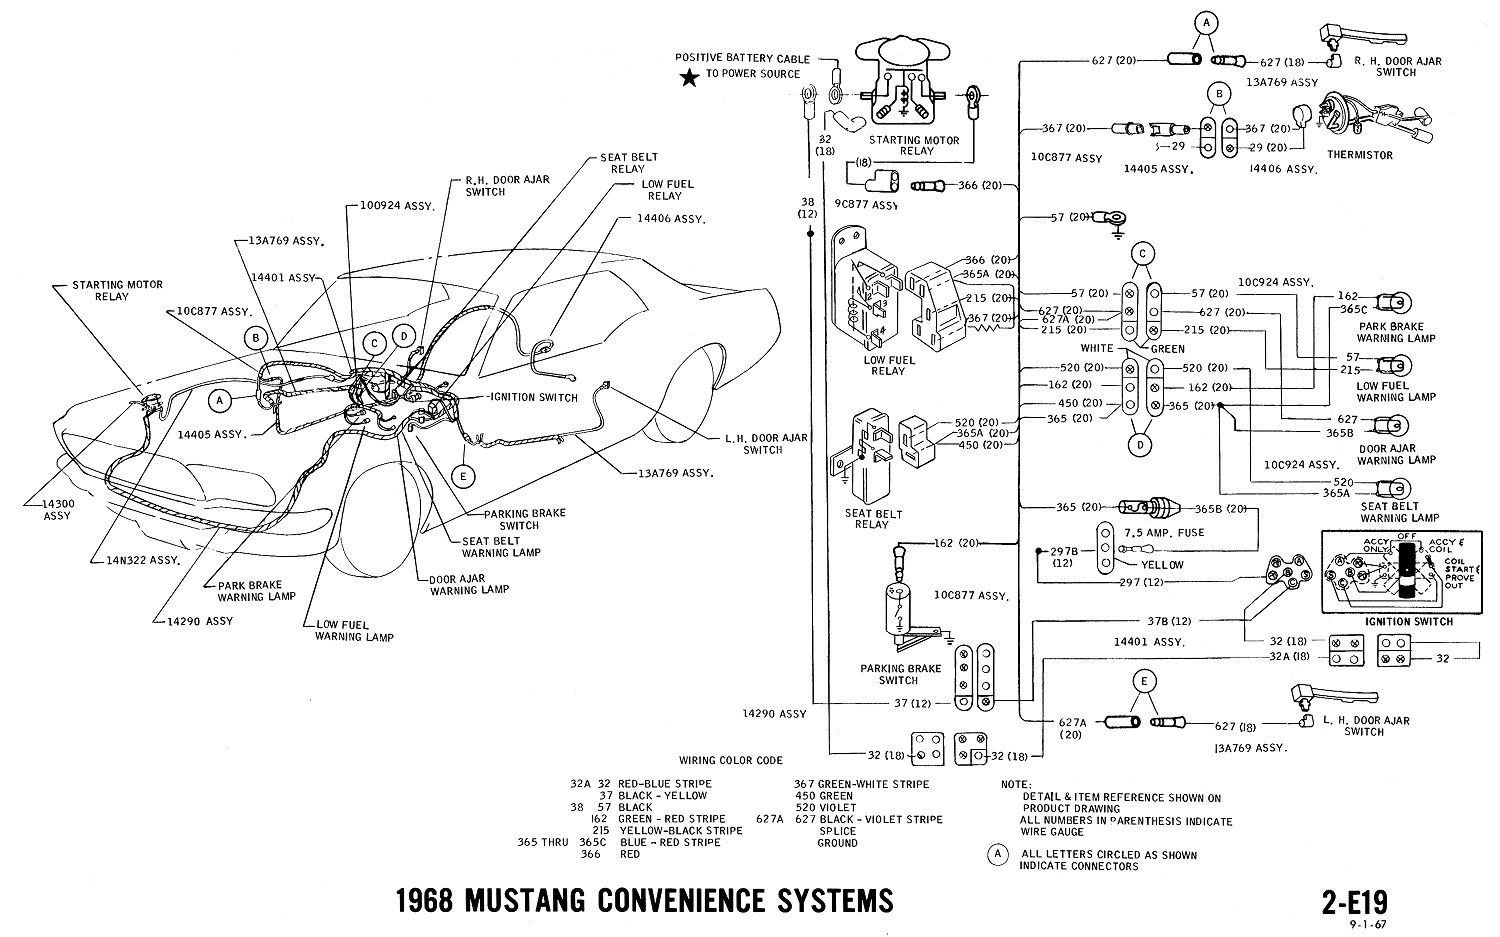 1968 mustang wiring diagrams and vacuum schematics - average joe, Wiring diagram